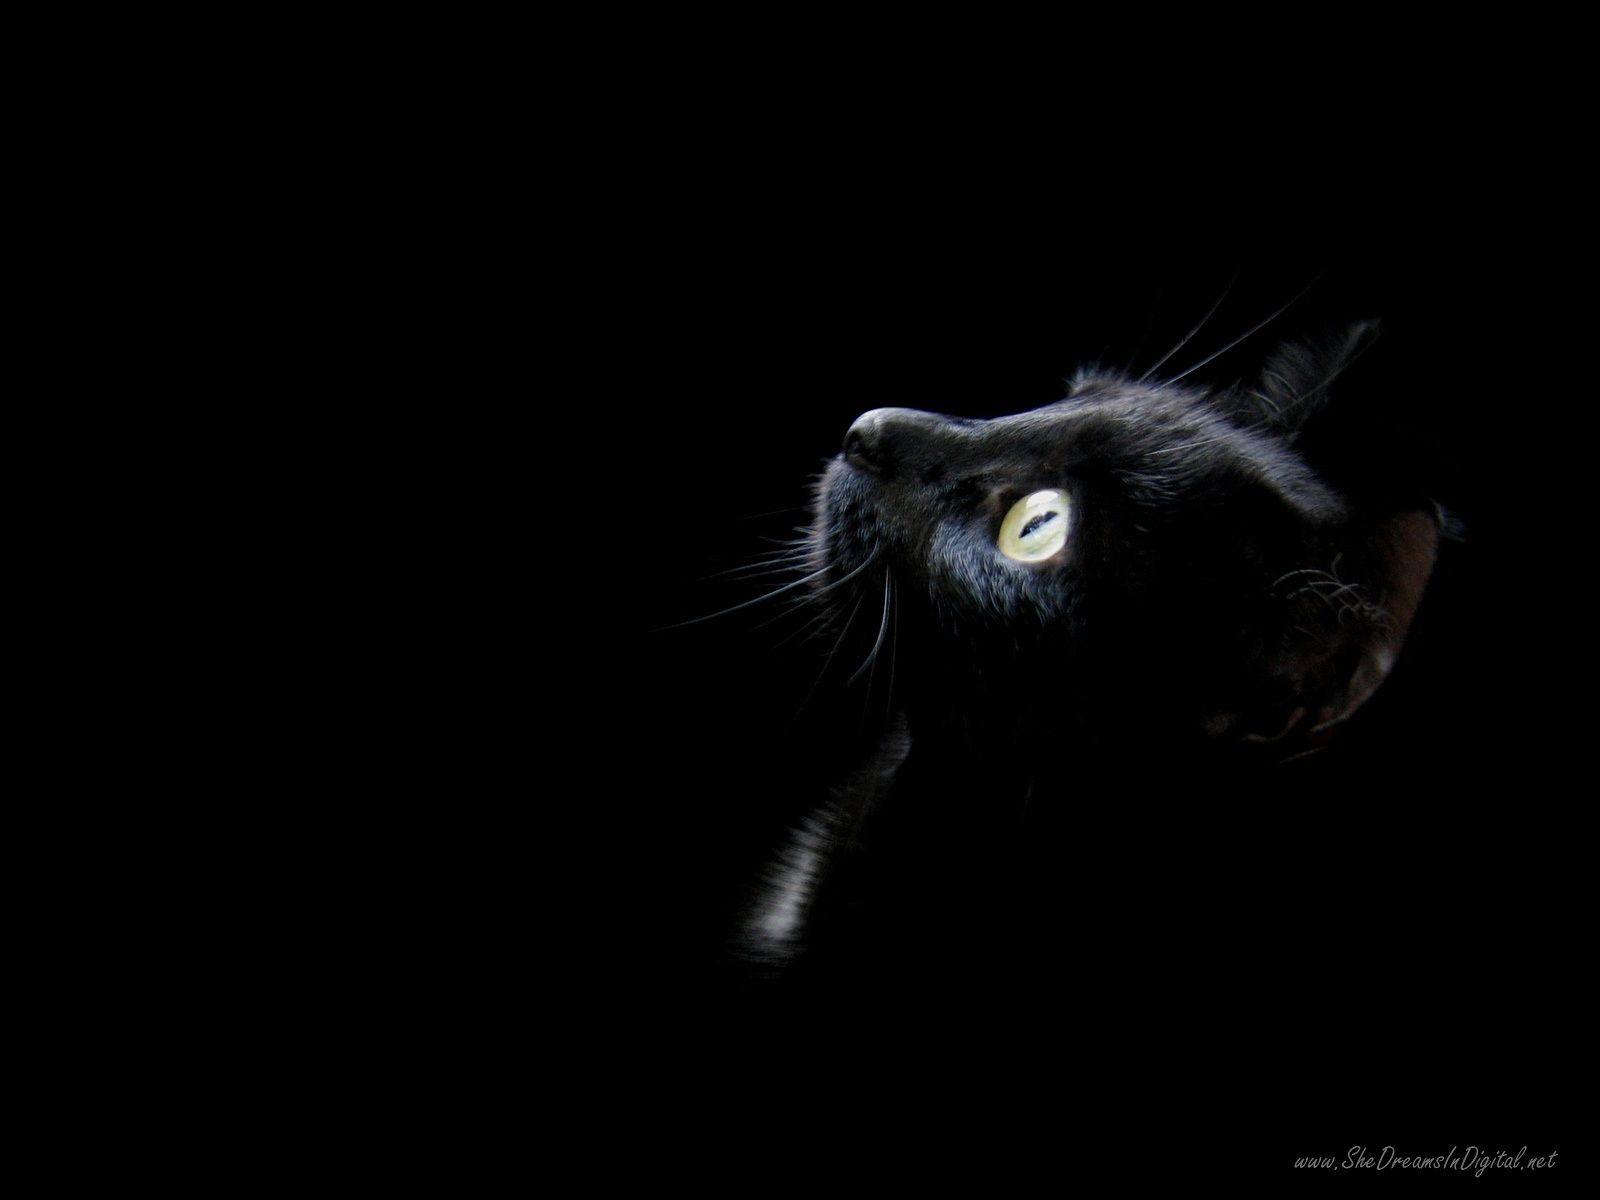 Black Cat Wallpaper Black Wallpaper Cat Wallpaper Black Cat Halloween Cats And Kittens